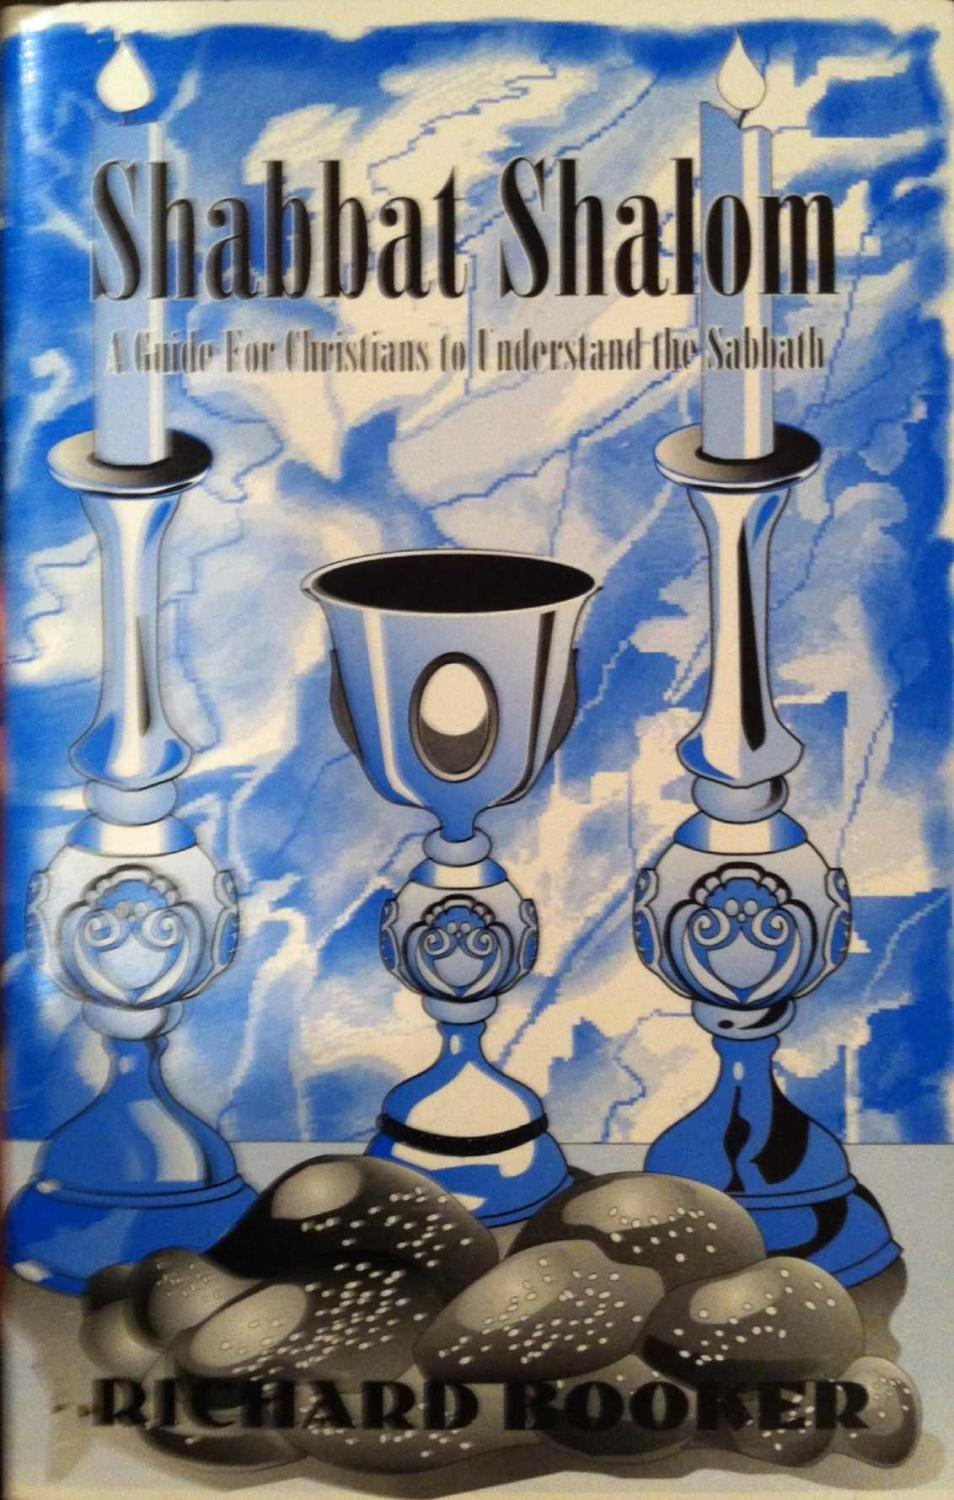 Shabbat shalom by richard booker sound of the trumpet texas usa shabbat shalom richard booker altavistaventures Images